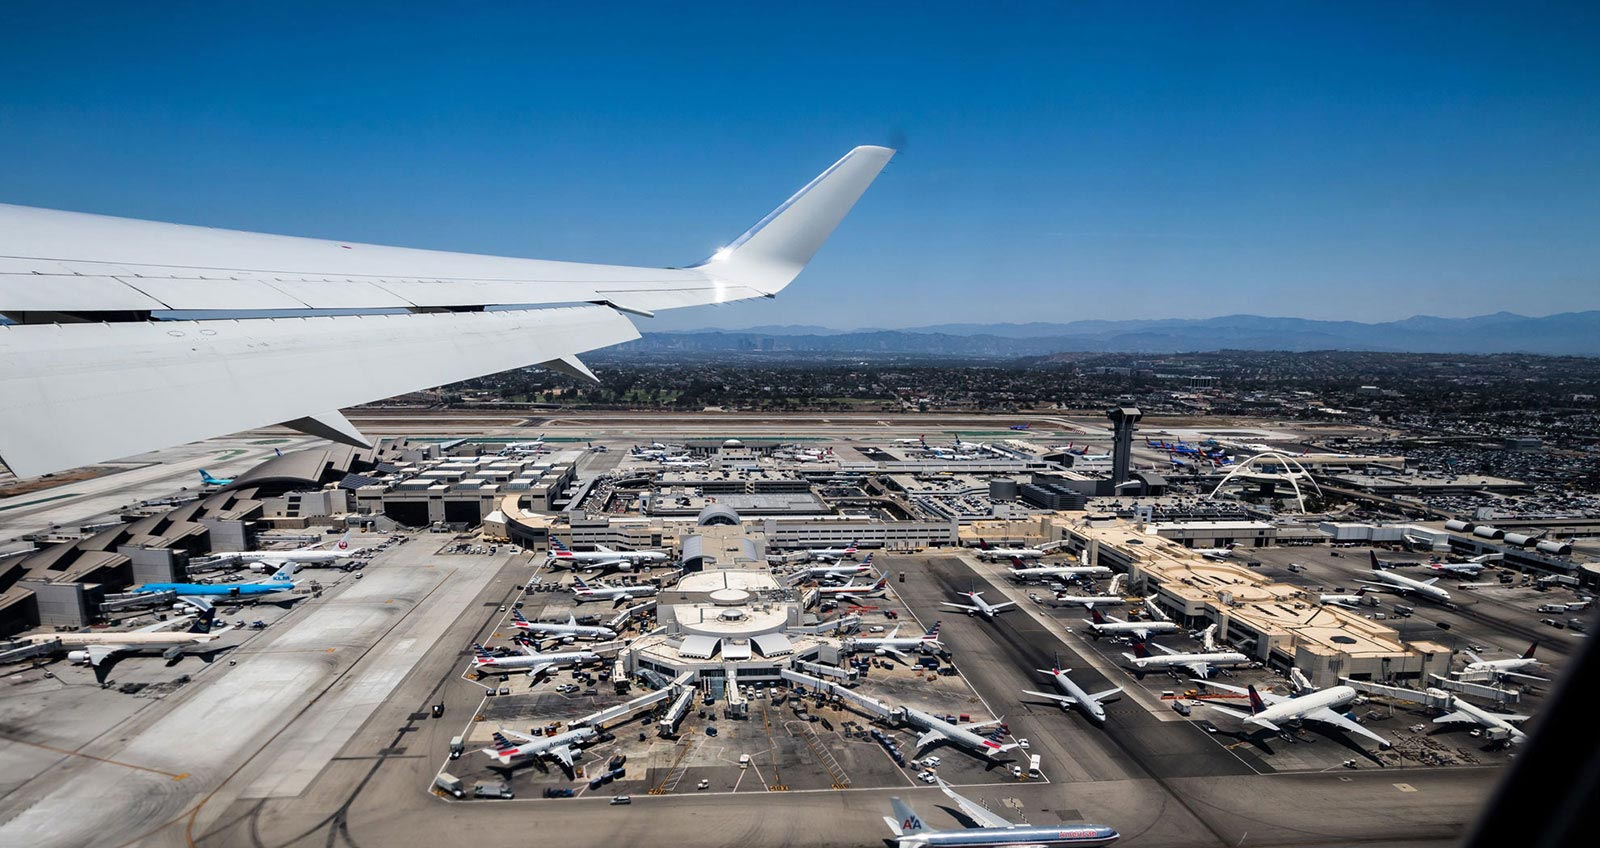 Background Image Showing Airplane wing flying over the terminals